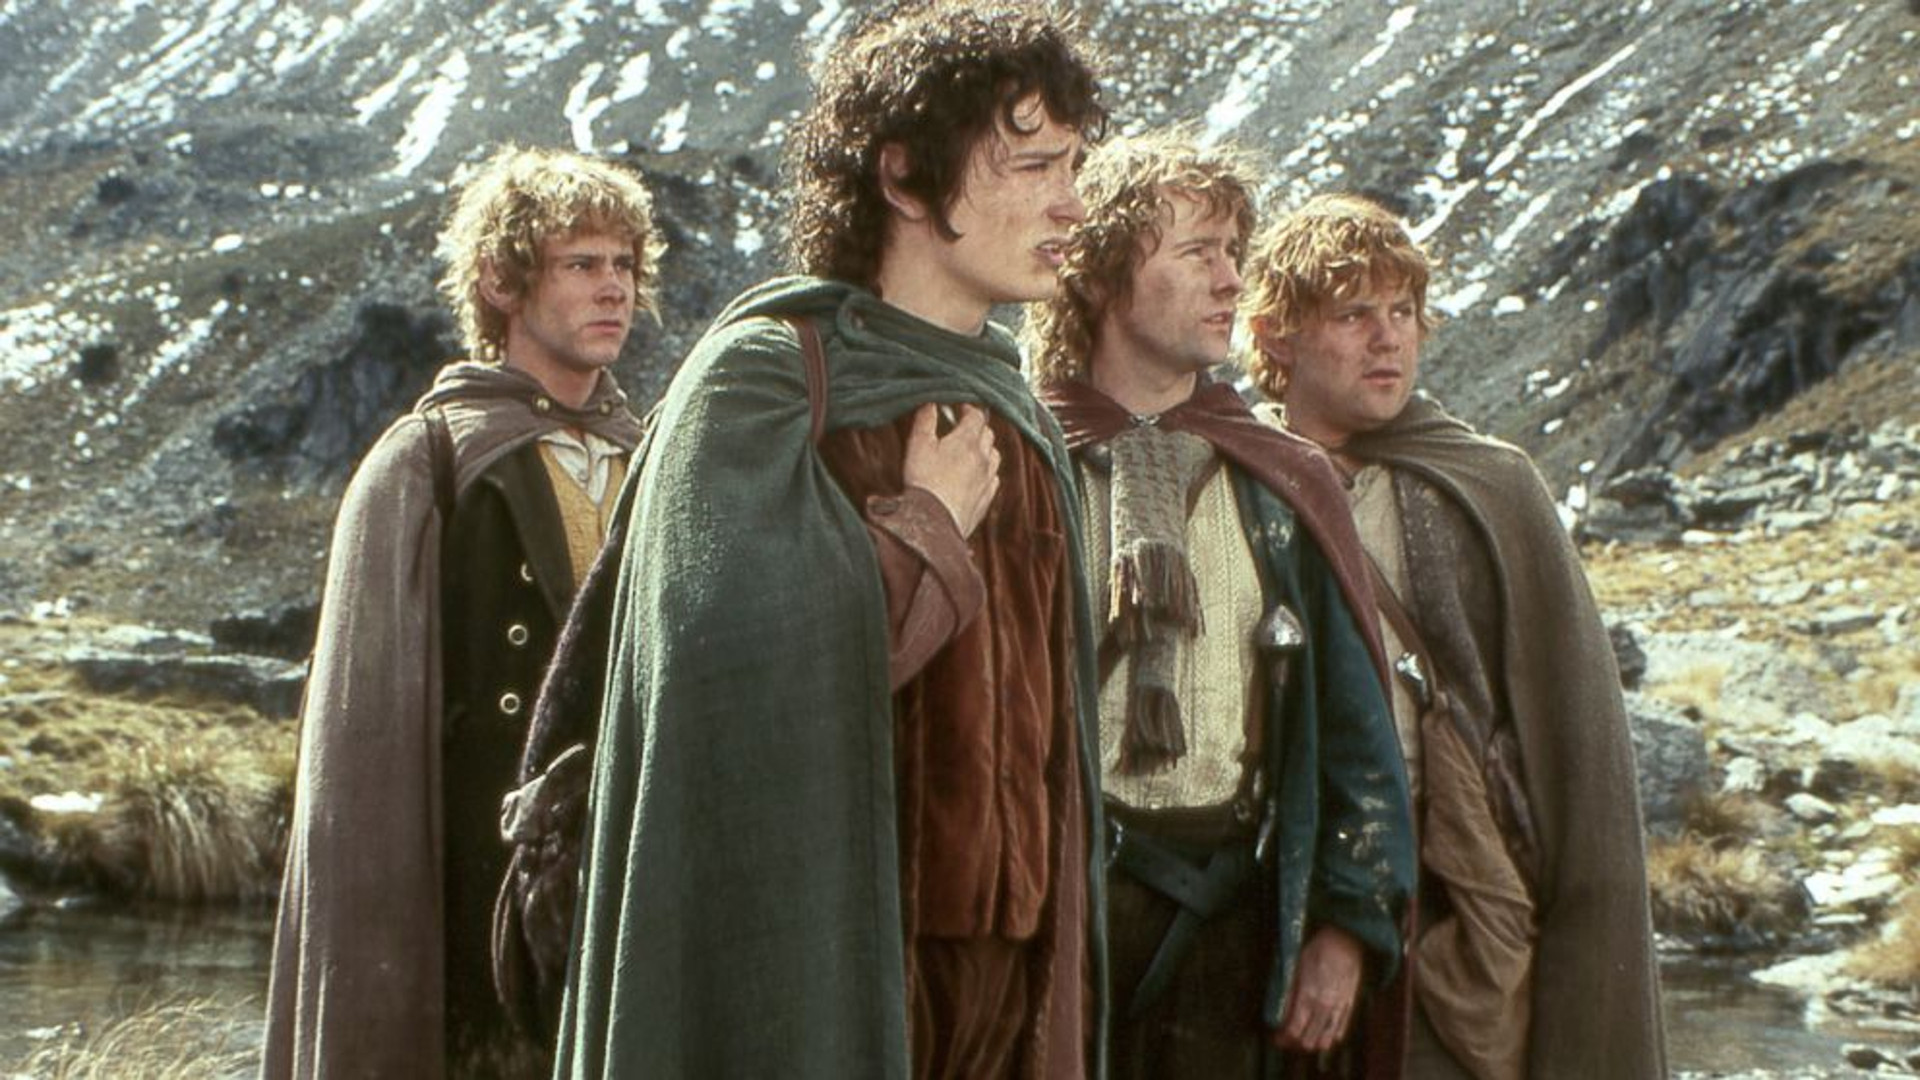 Amazon's Lord of the Rings MMO has been cancelled